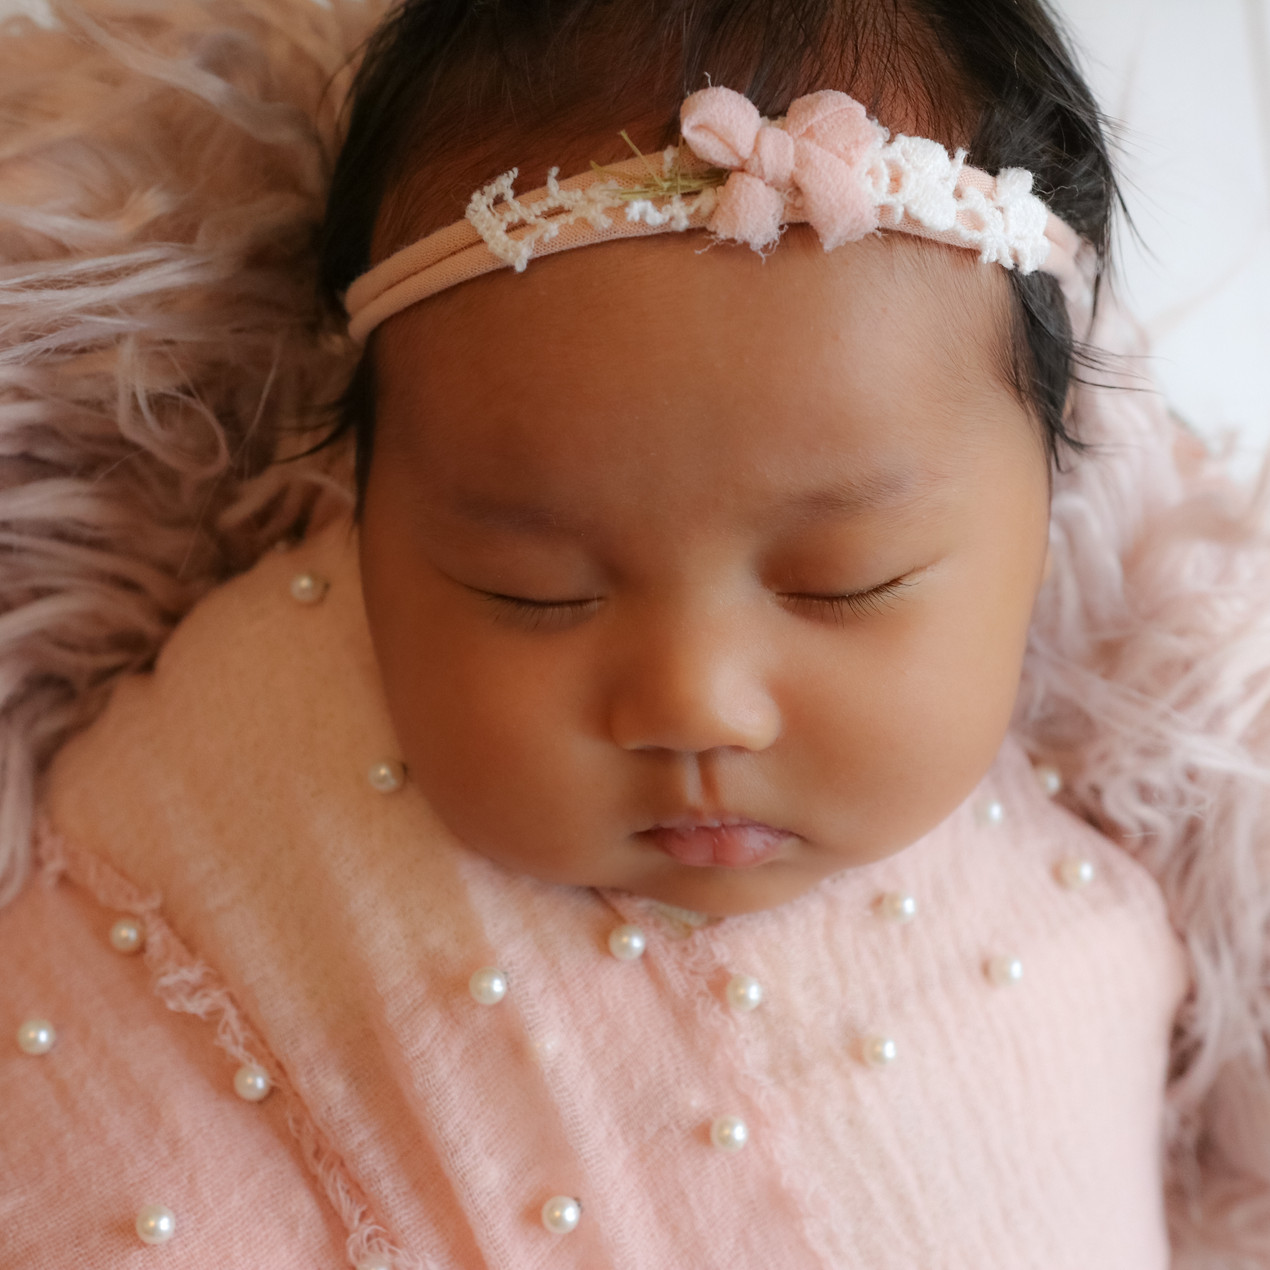 sleeping newborn girl wearing pink headband and wrap with peals